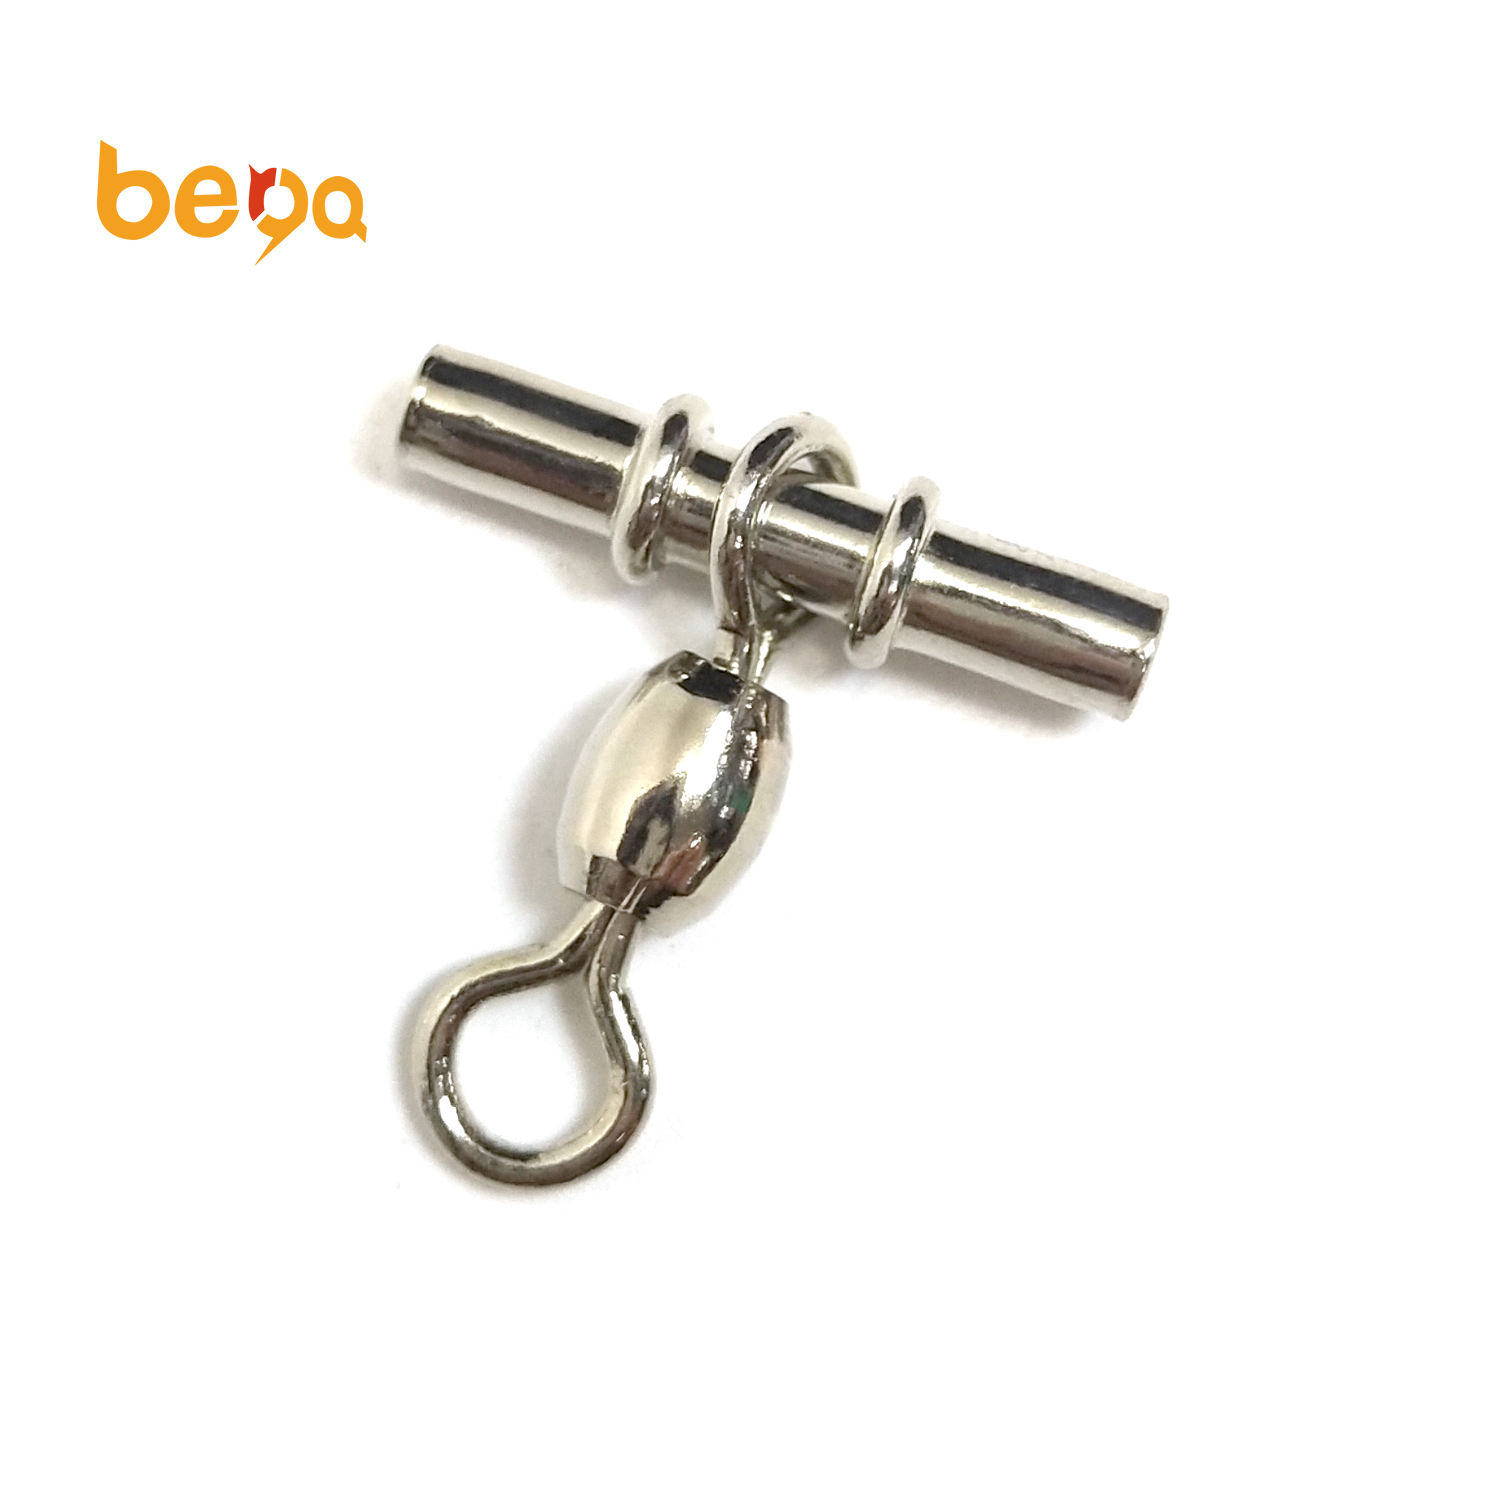 High Quality Cross Line Crane Fishing Swivel With Solid Ring Brass Tube Fishing Line Connector Fishing Accessories